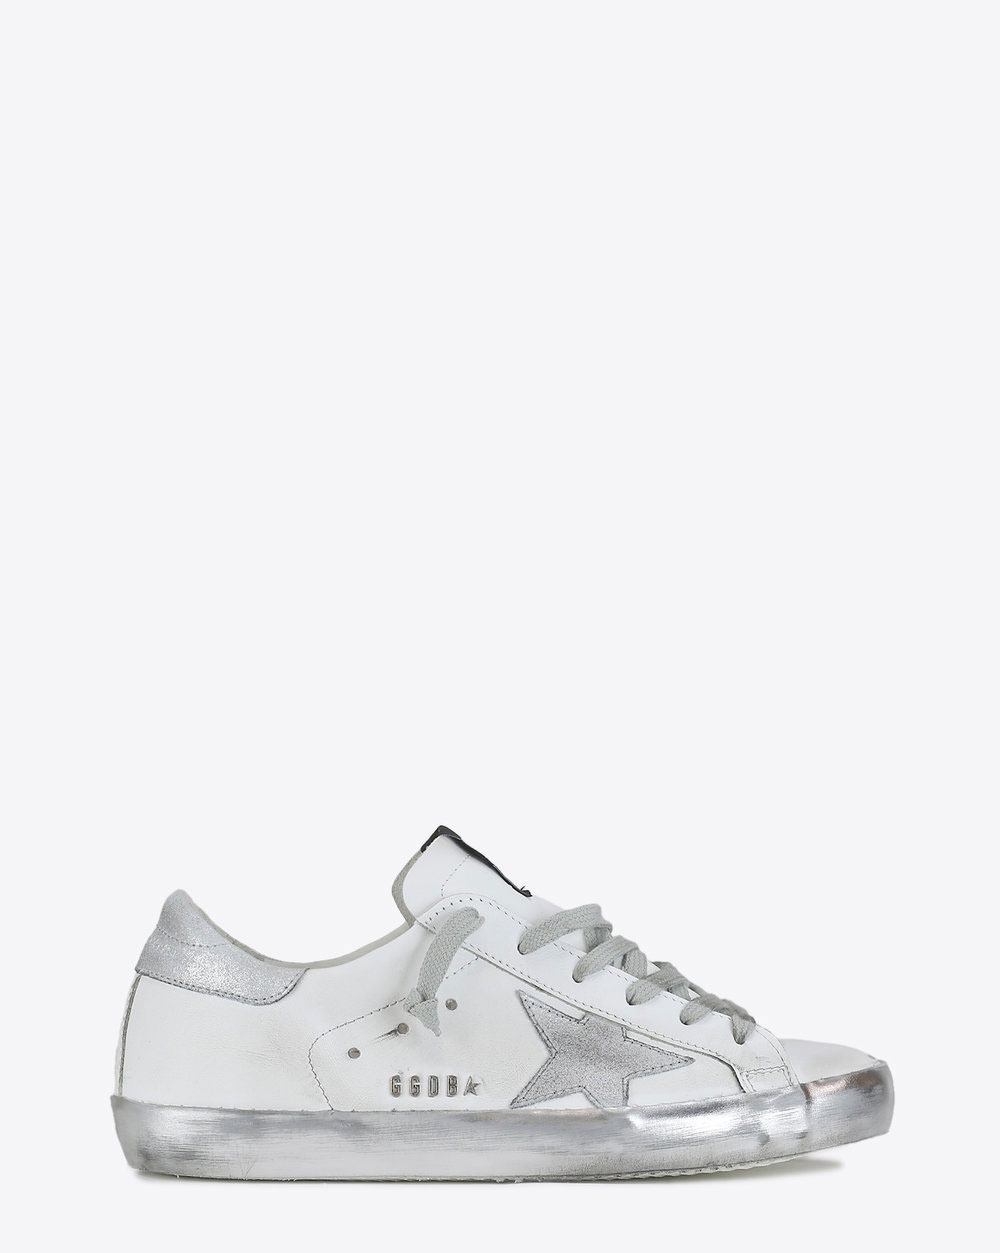 Golden Goose Woman Permanent Sneakers Superstar - White - Silver Star Sparkle